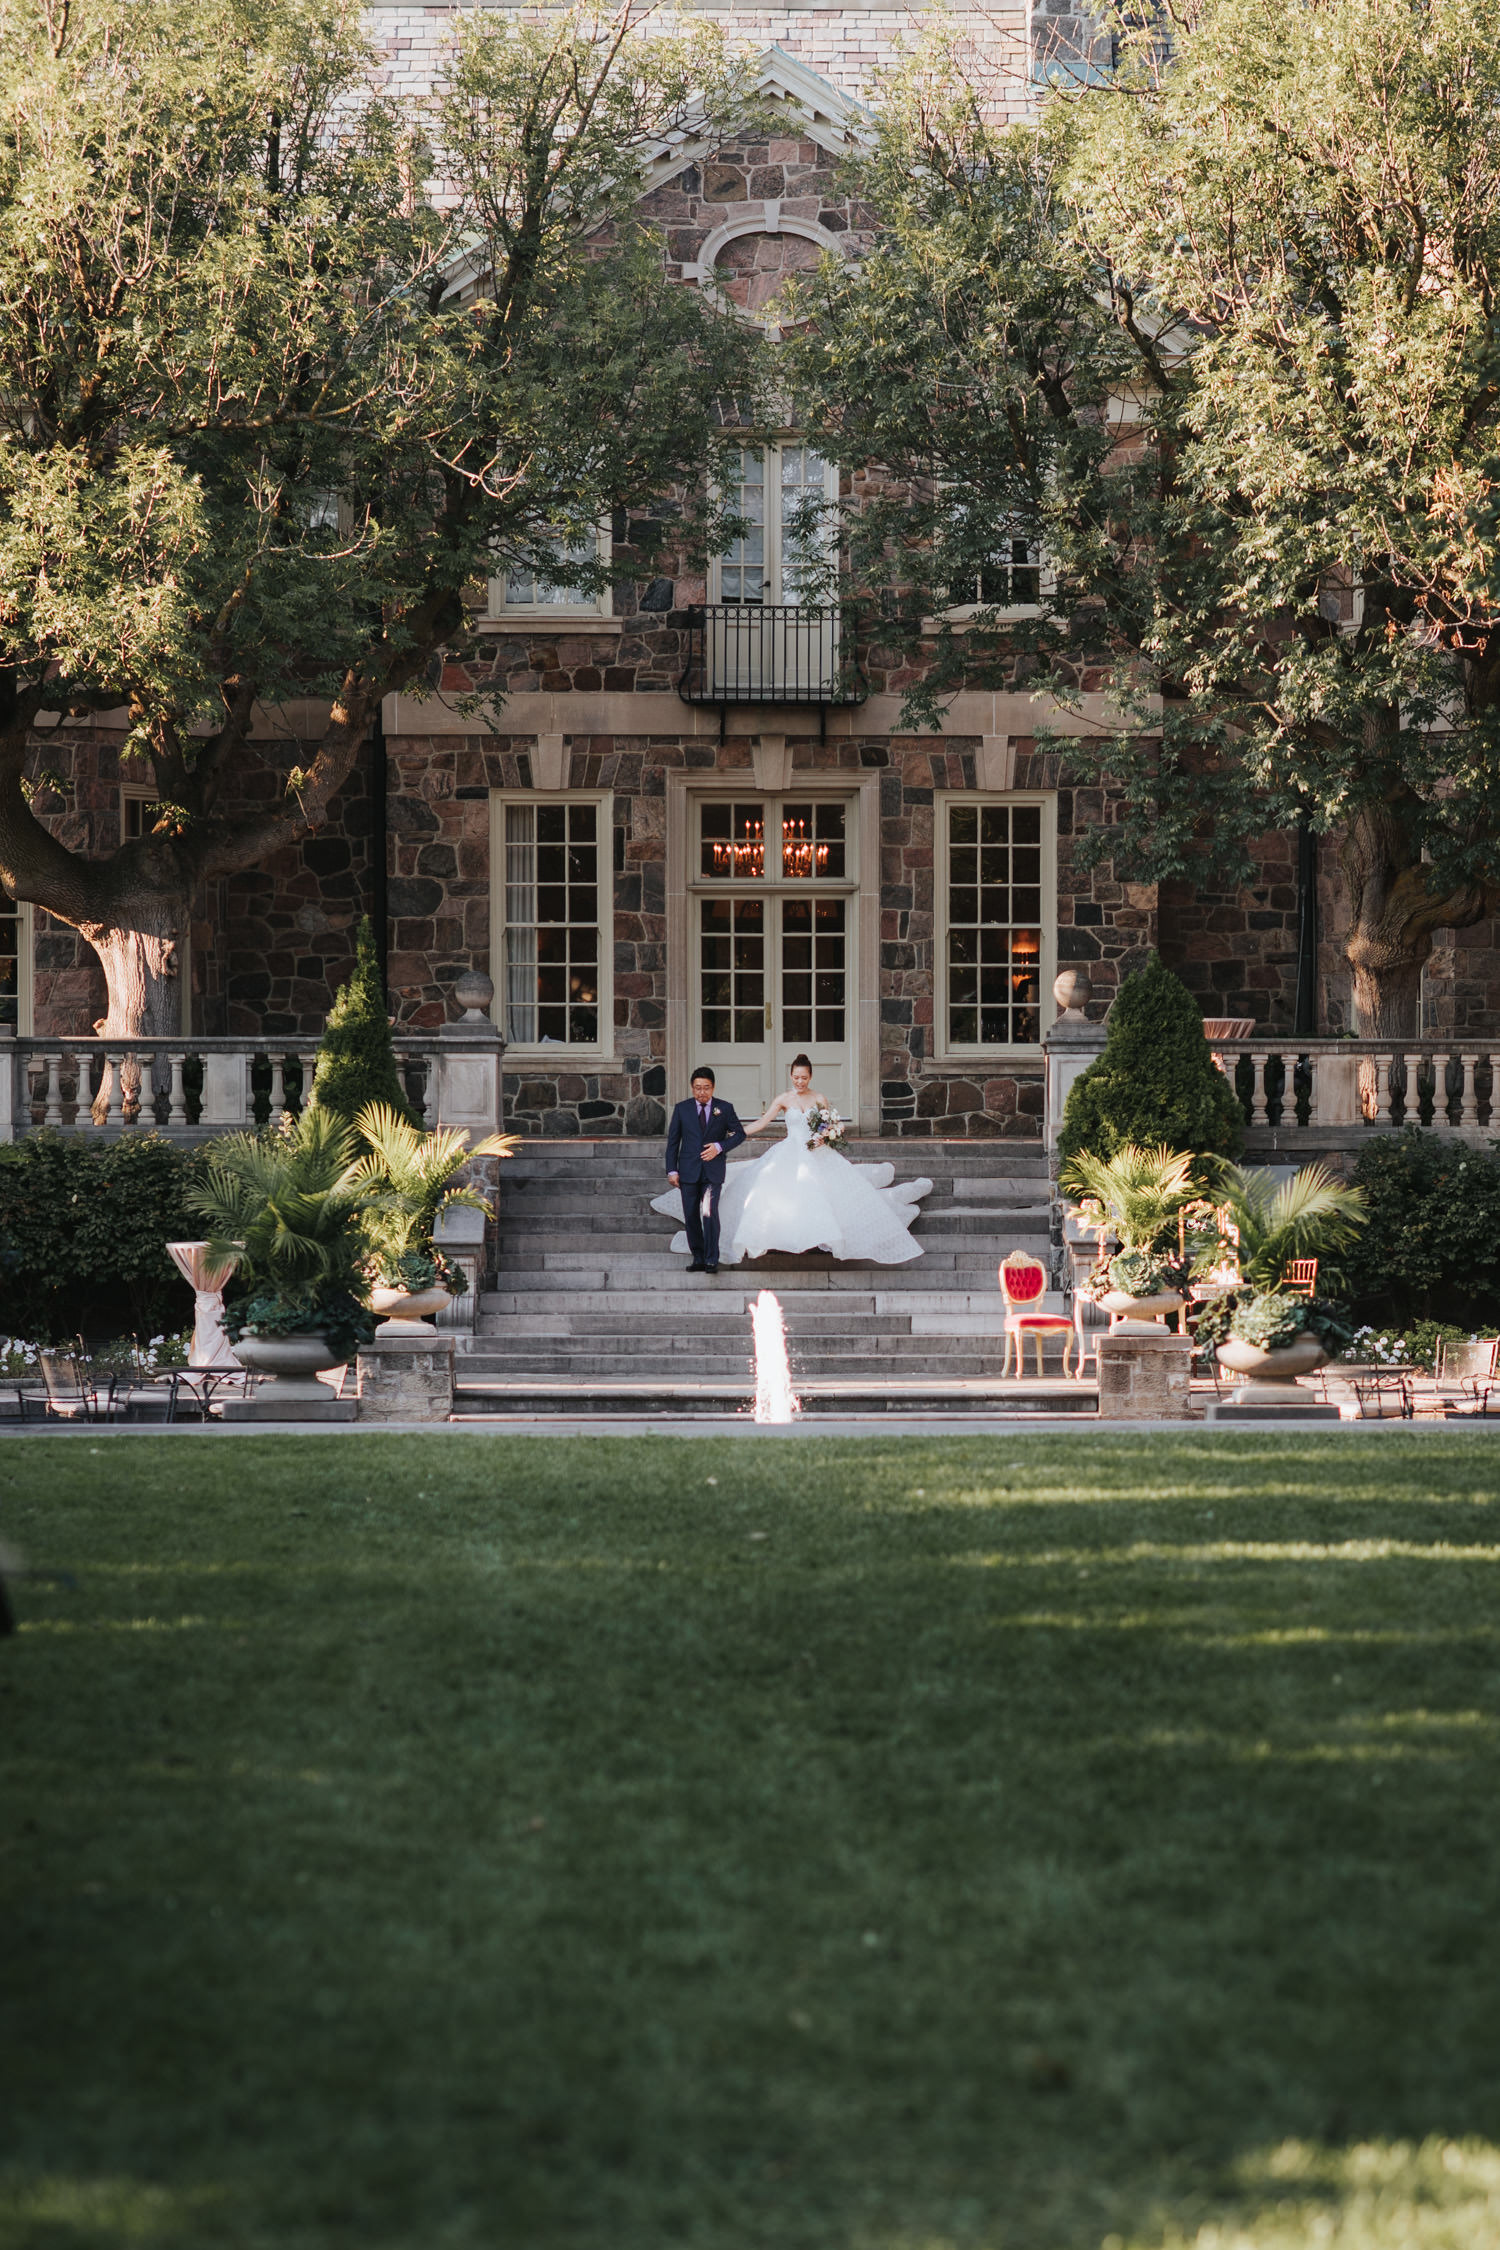 Graydon Hall Outdoor Wedding Ceremony Processional